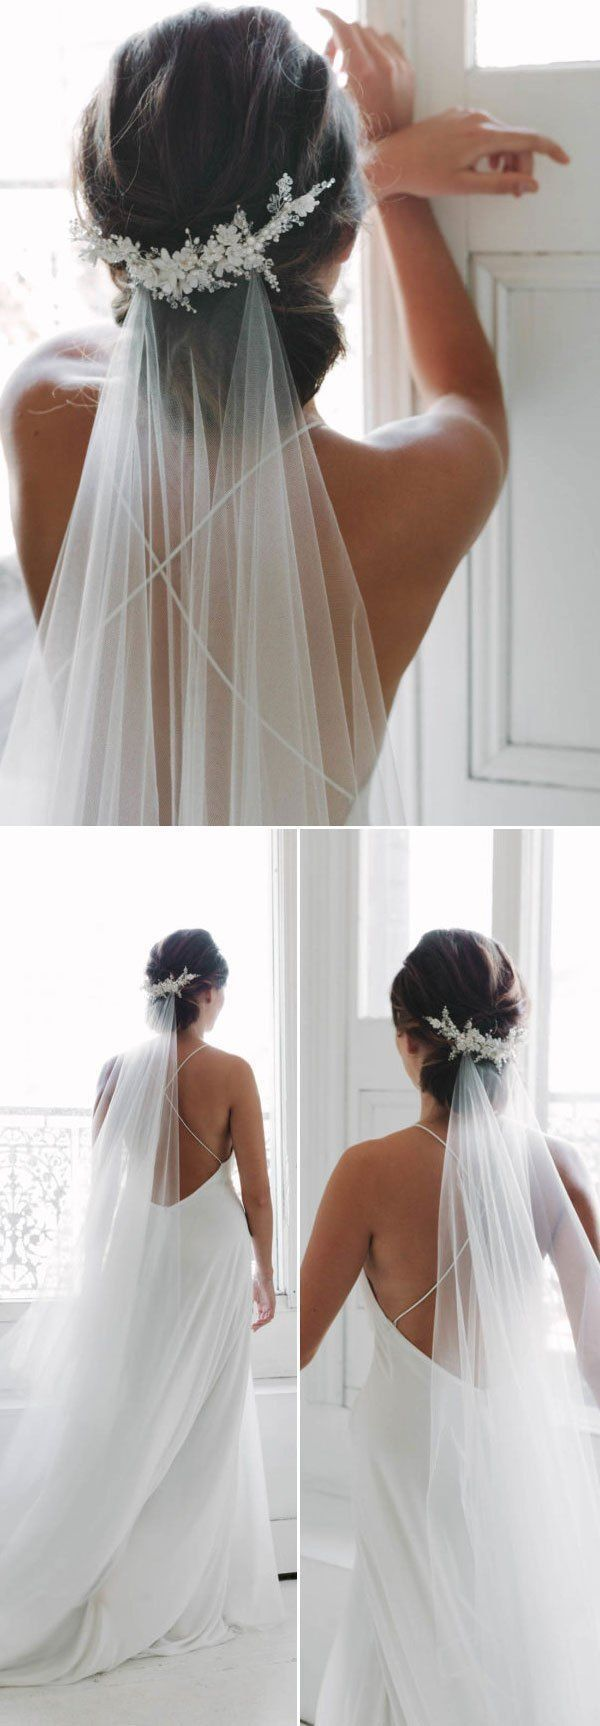 Very elegant and romantic! Perfect for a traditional wedding! Top 20 wedding